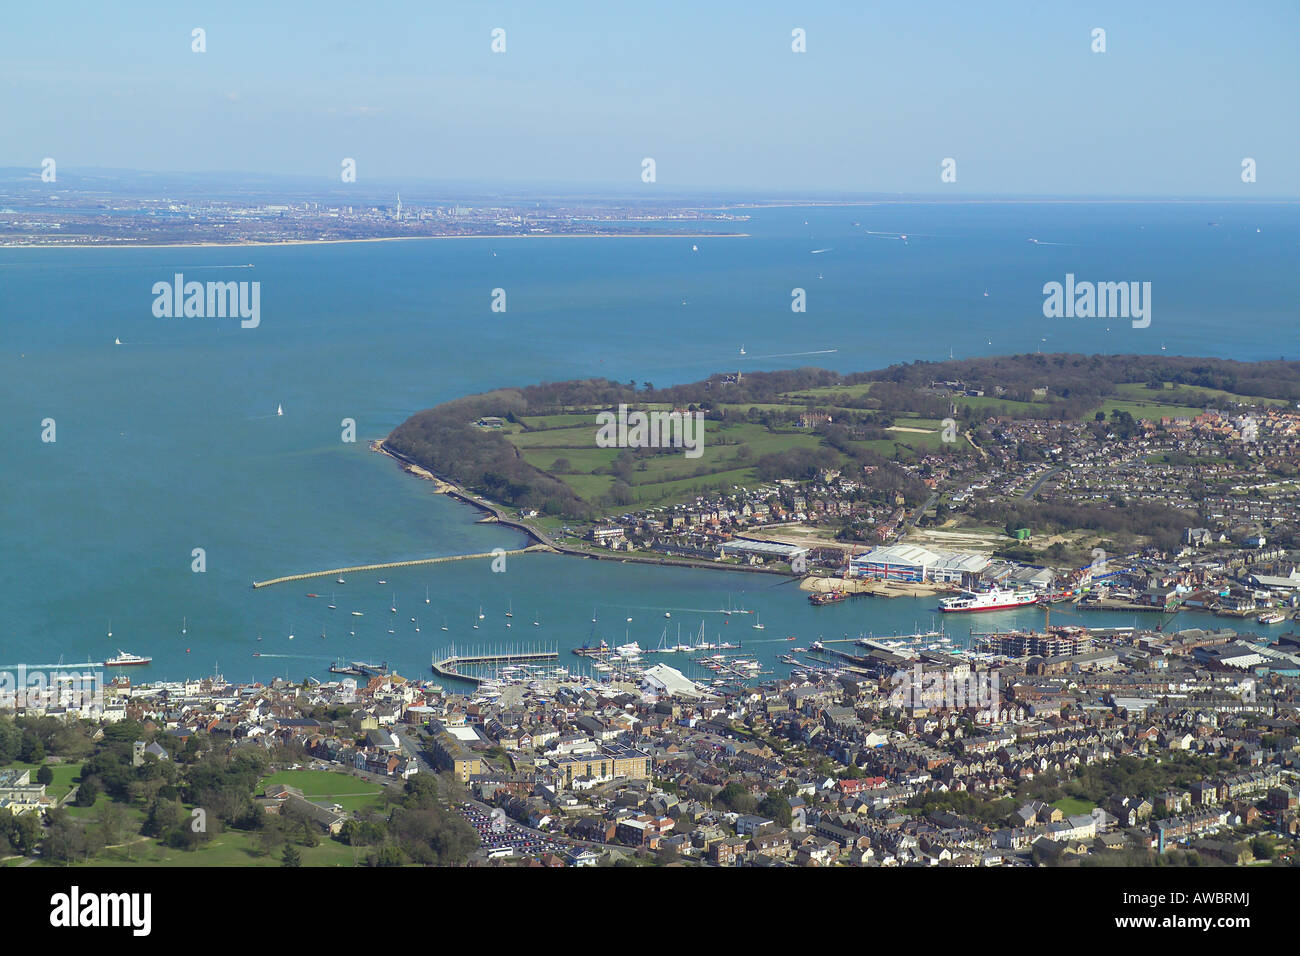 Panoramic aerial view of Cowes and East Cowes on the Isle of Wight featuring the ferry terminal and the boat yards Stock Photo